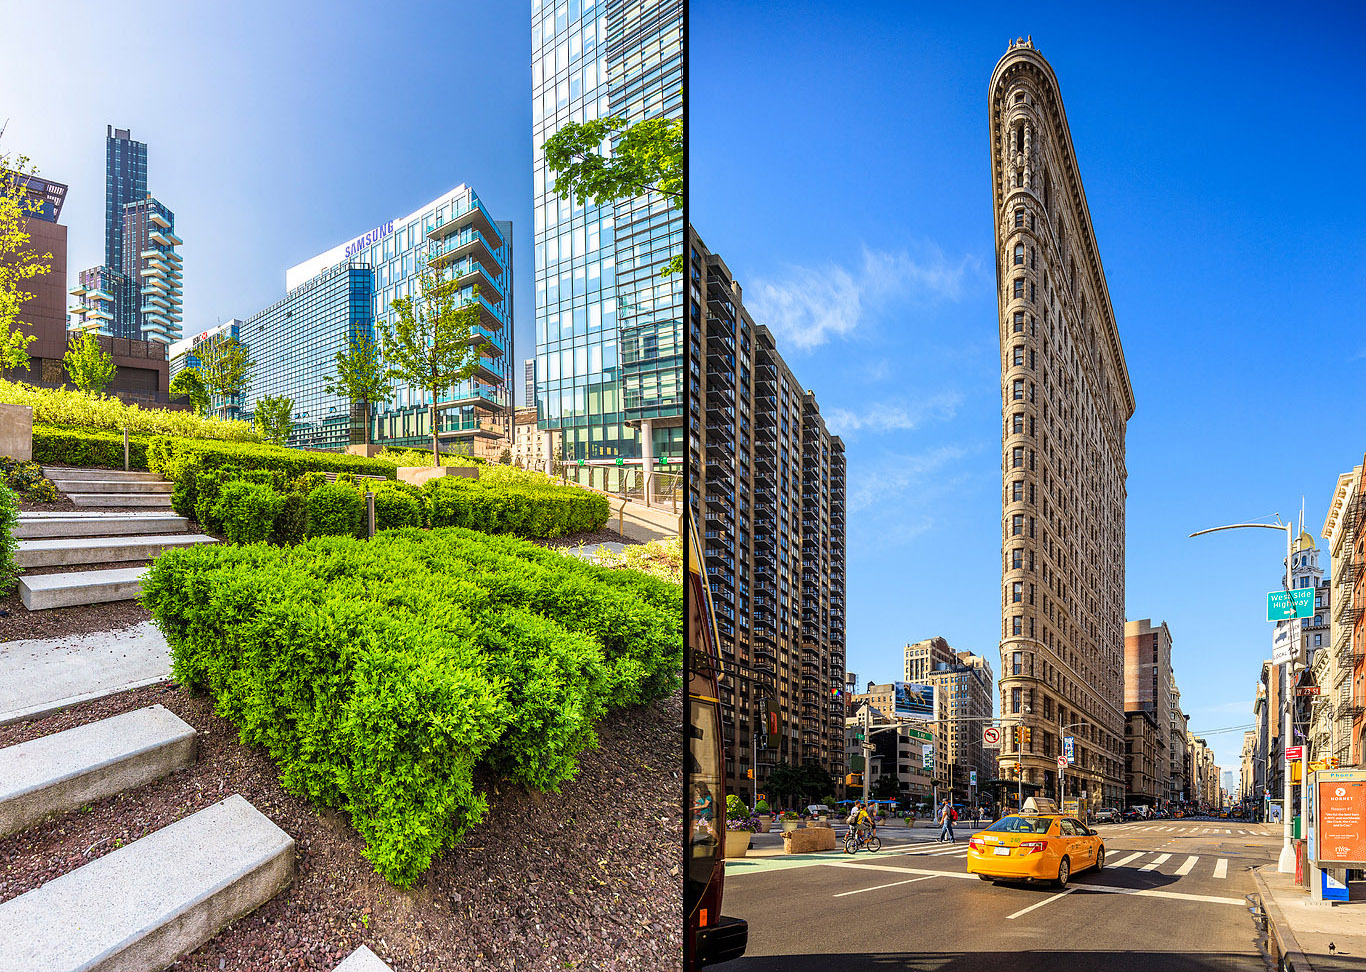 NEW IMAGES > Milan - New York Italy also has its